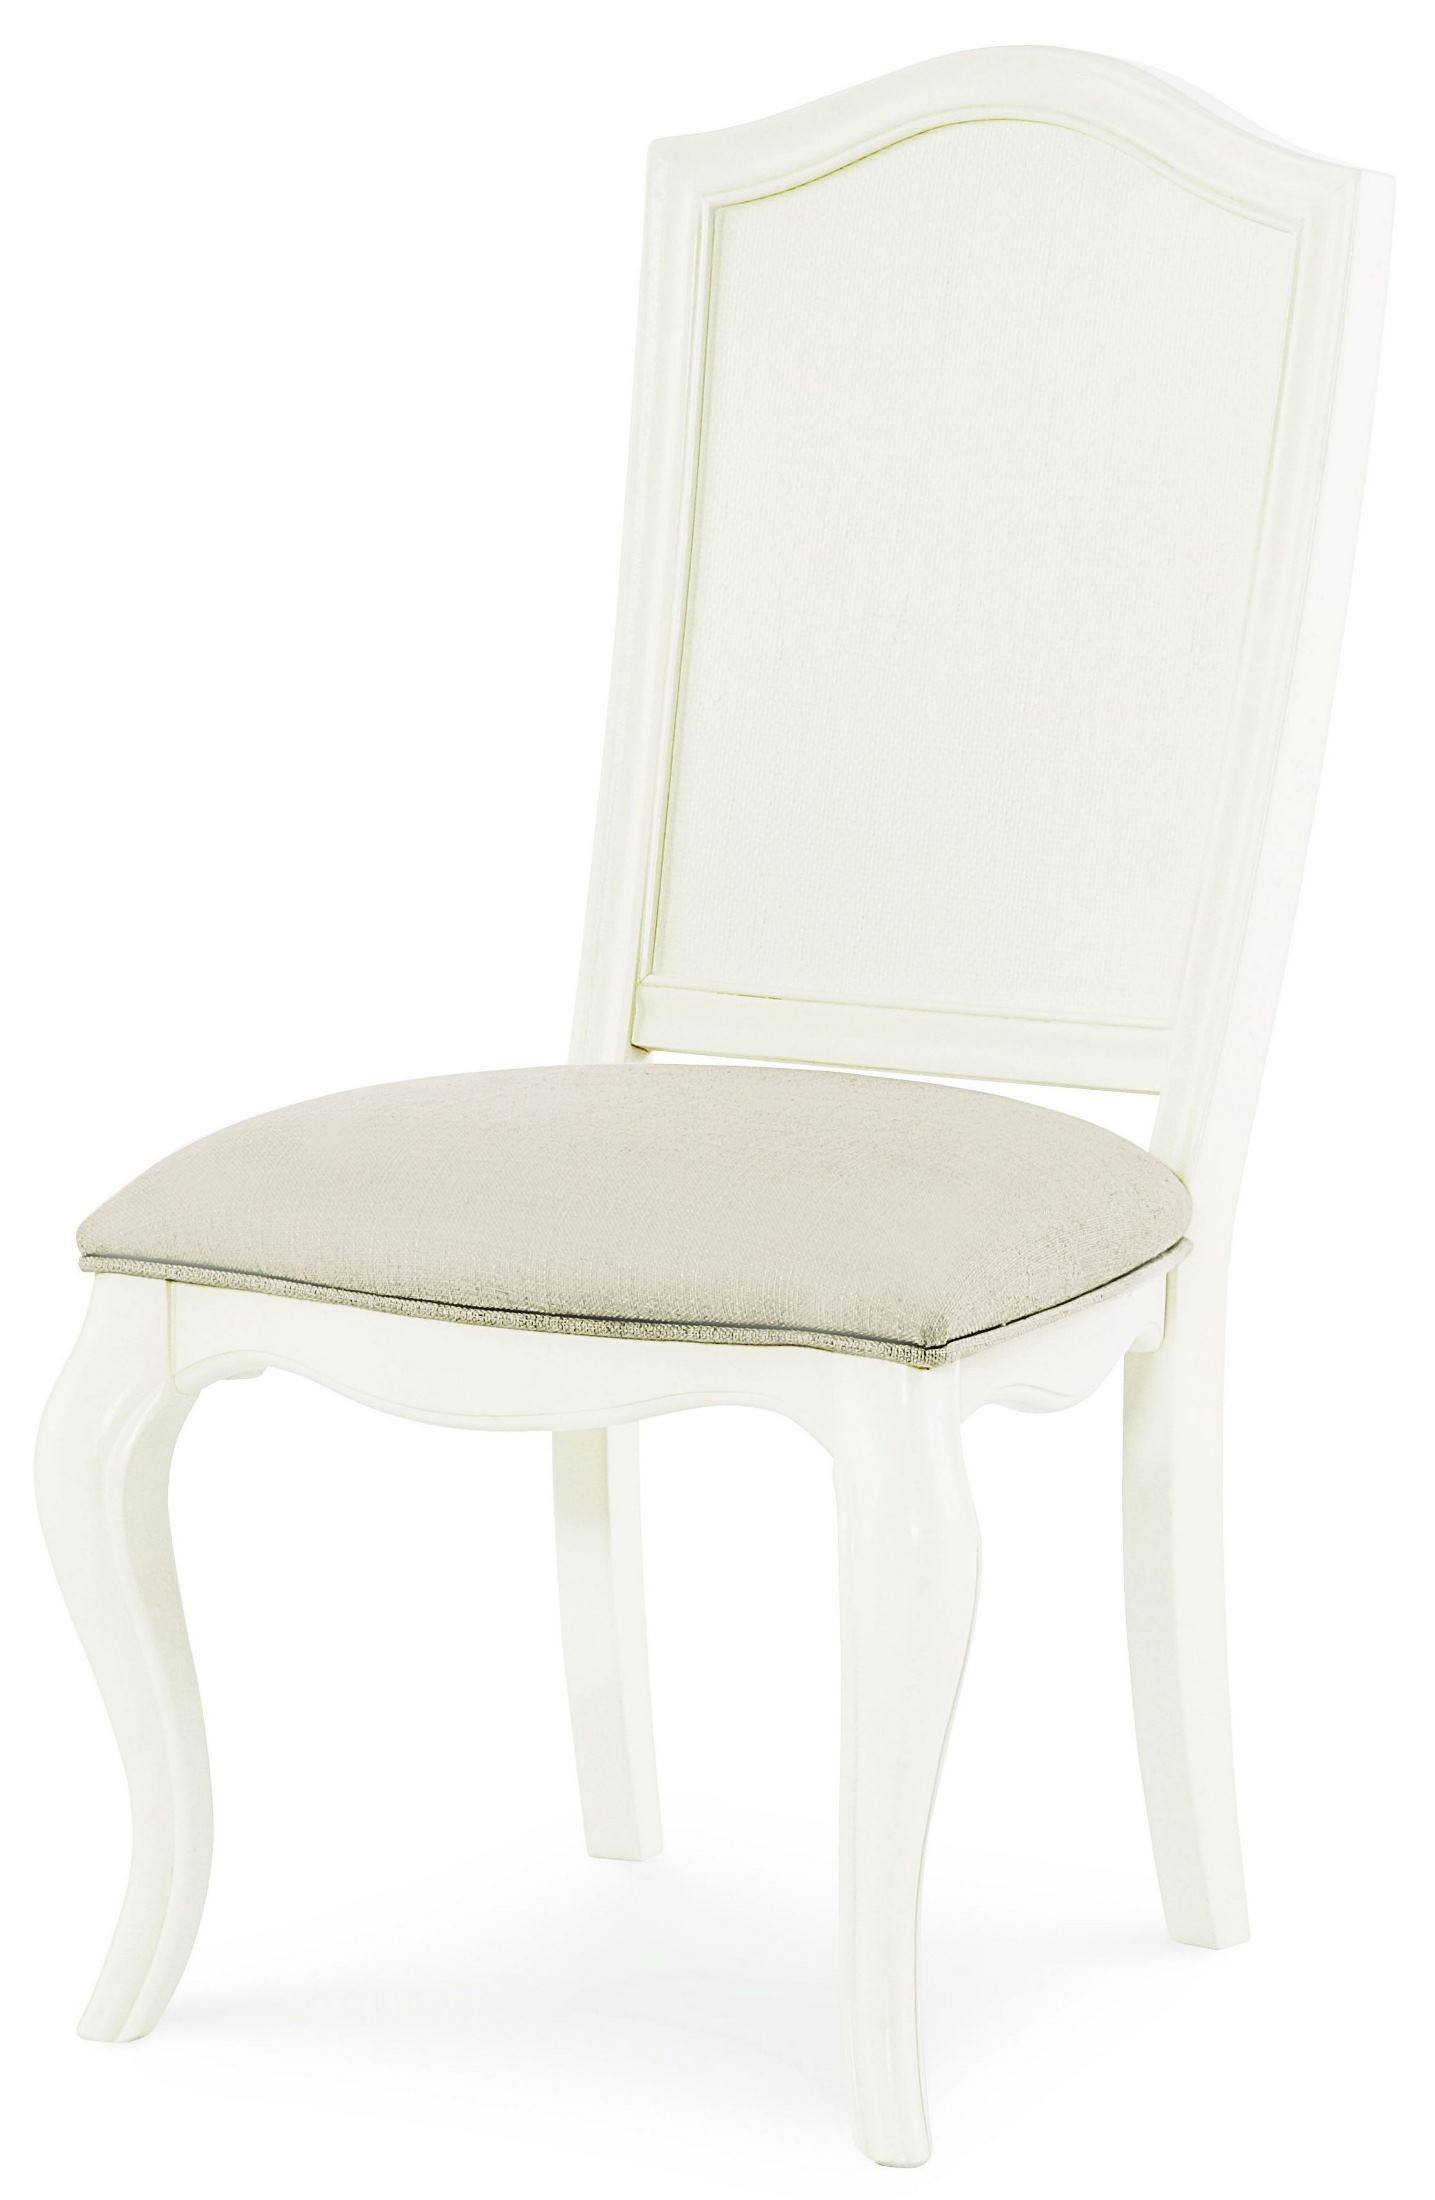 white linen chair covers for sale recliner chairs costco harmony antique from legacy kids